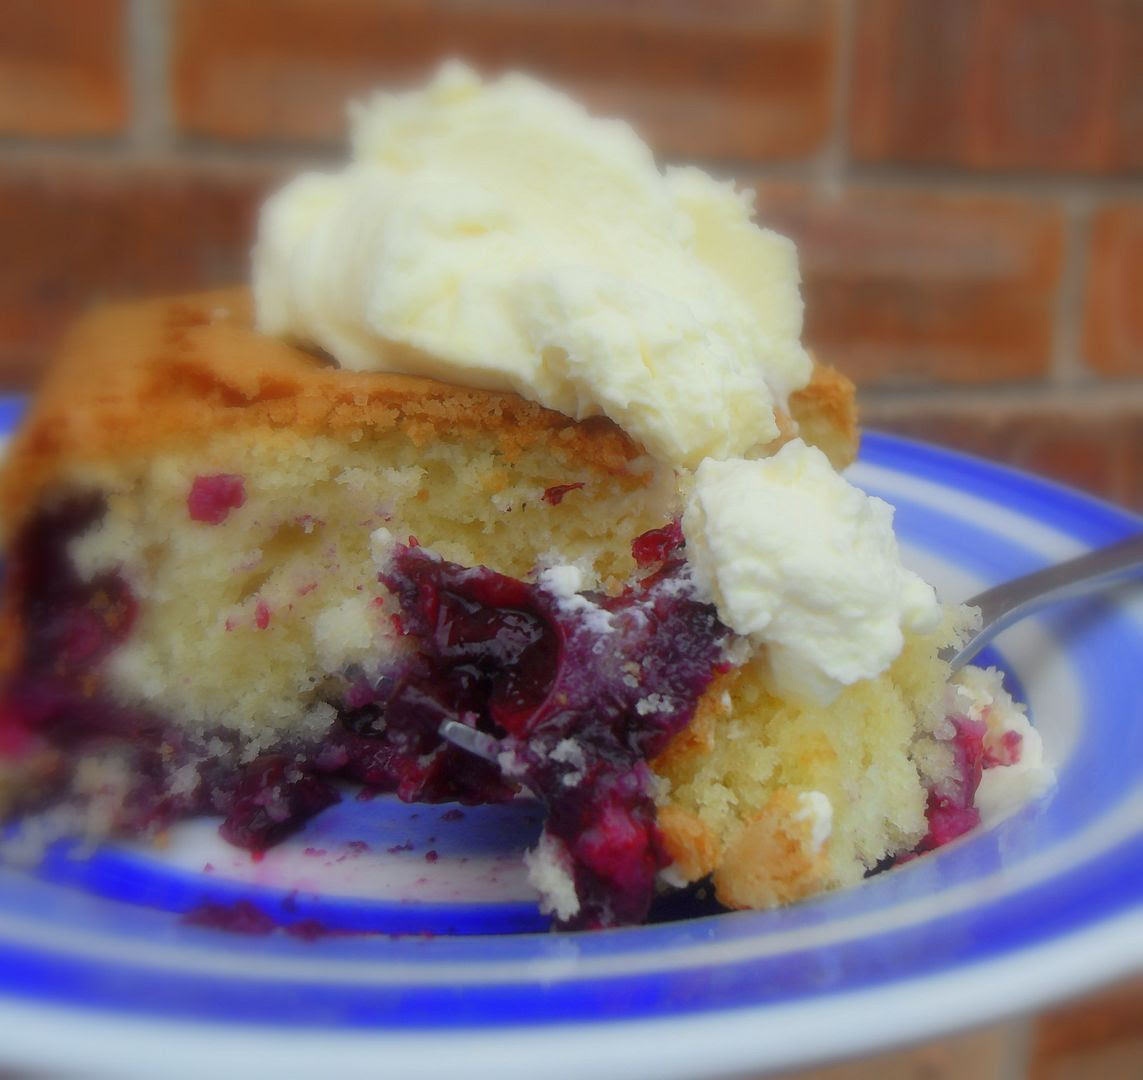 Melt-In-Your-Mouth Blueberry Cake, with a Lemon Cream*